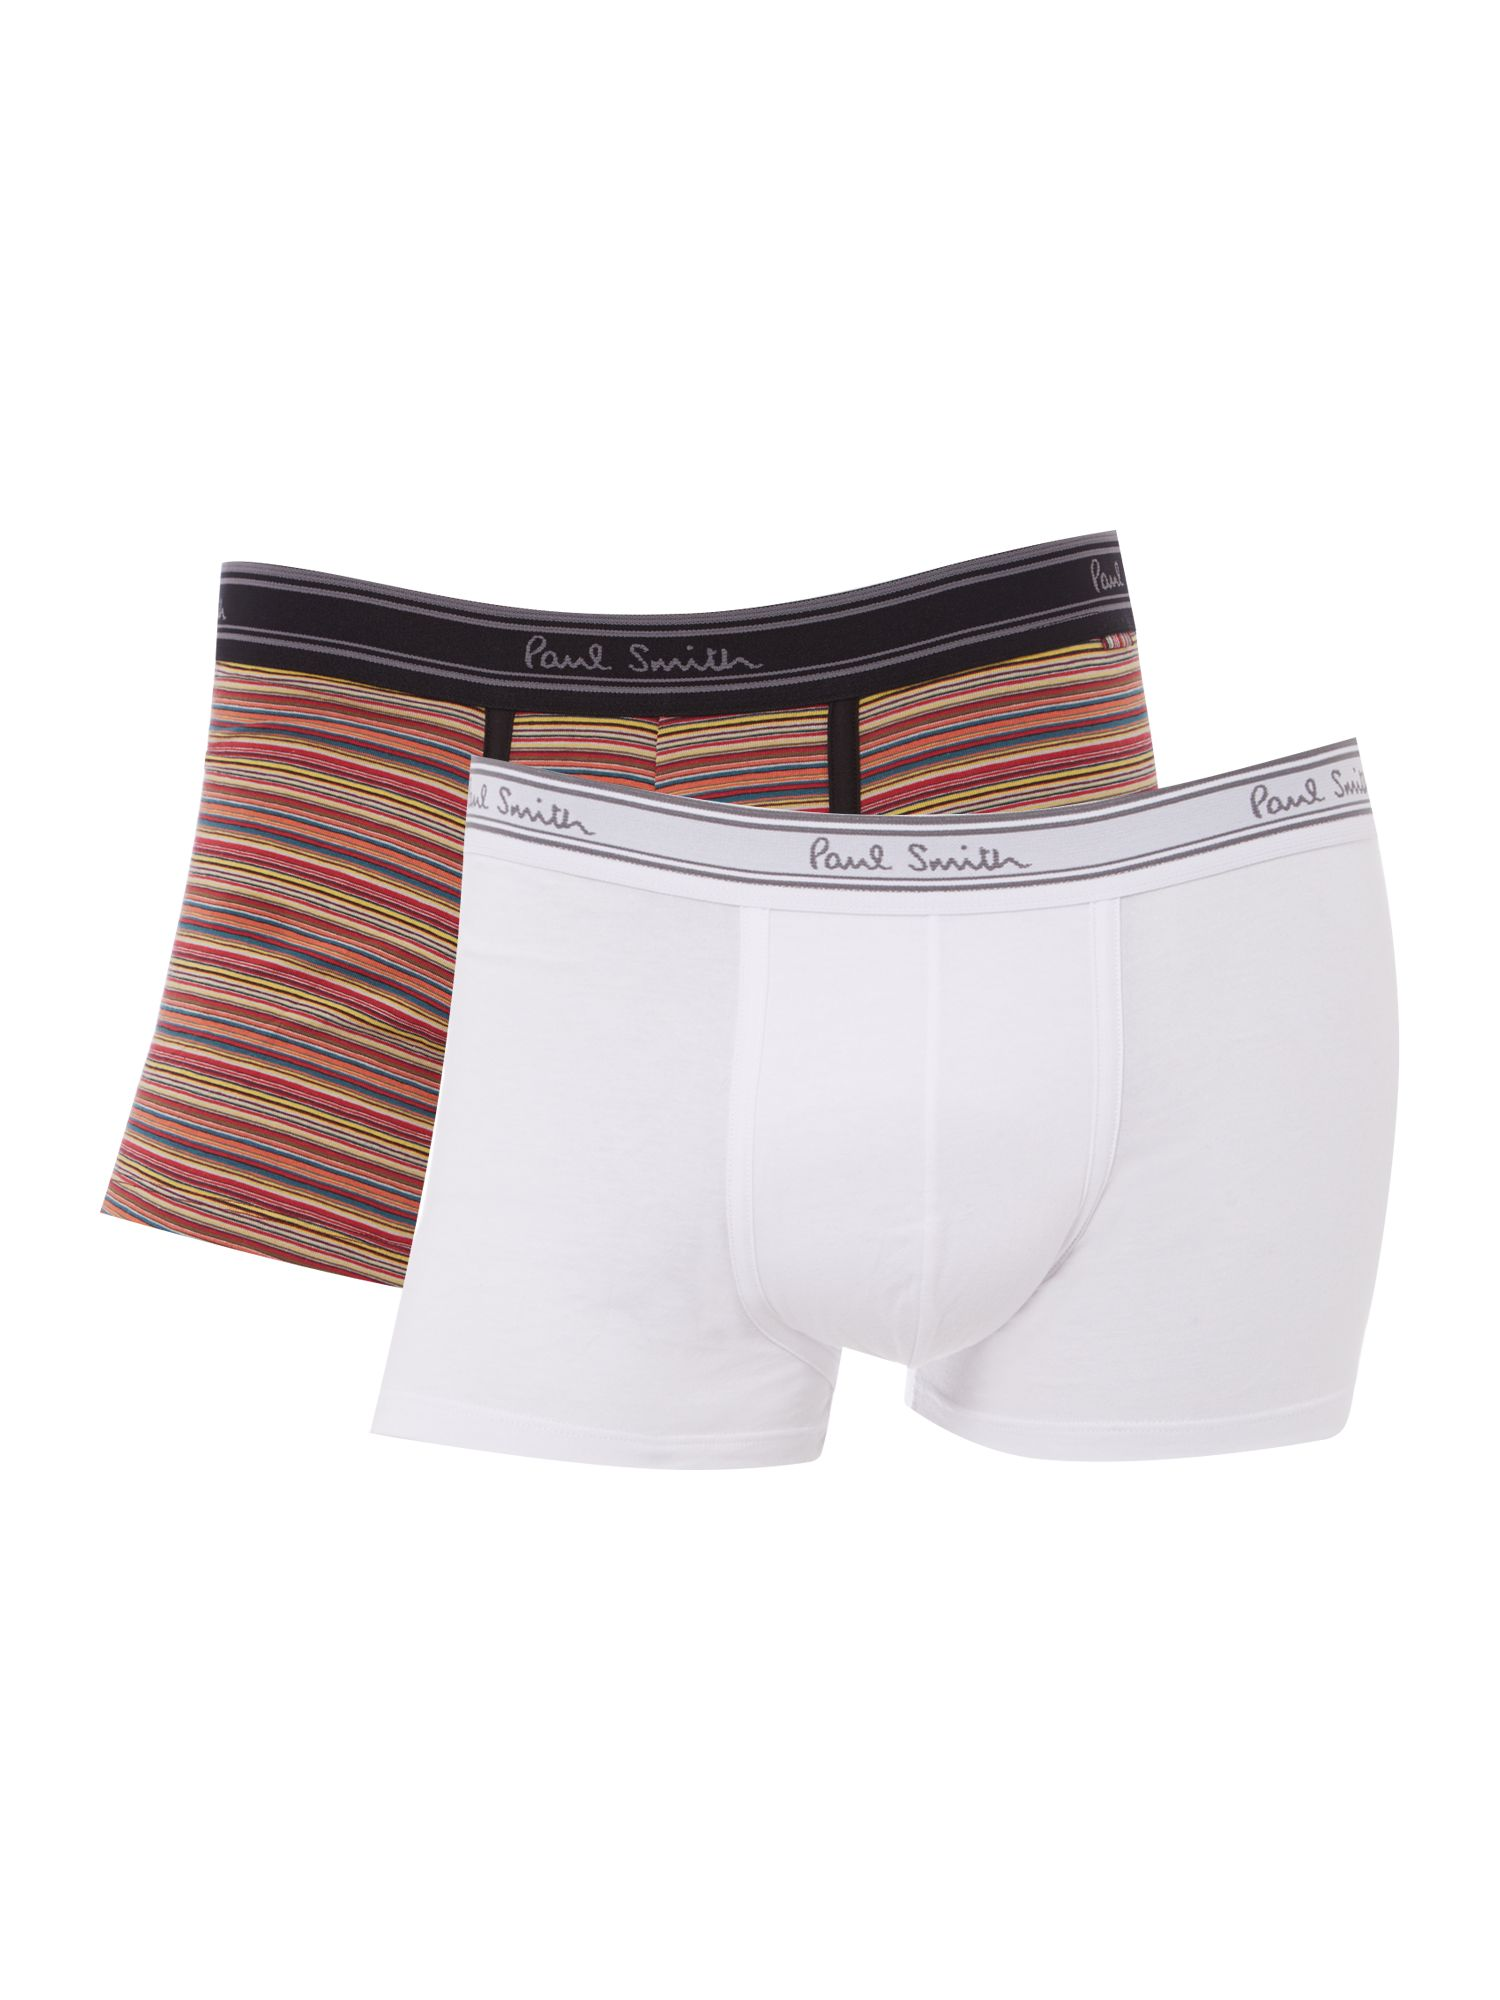 2 pack multistripe and plain trunk